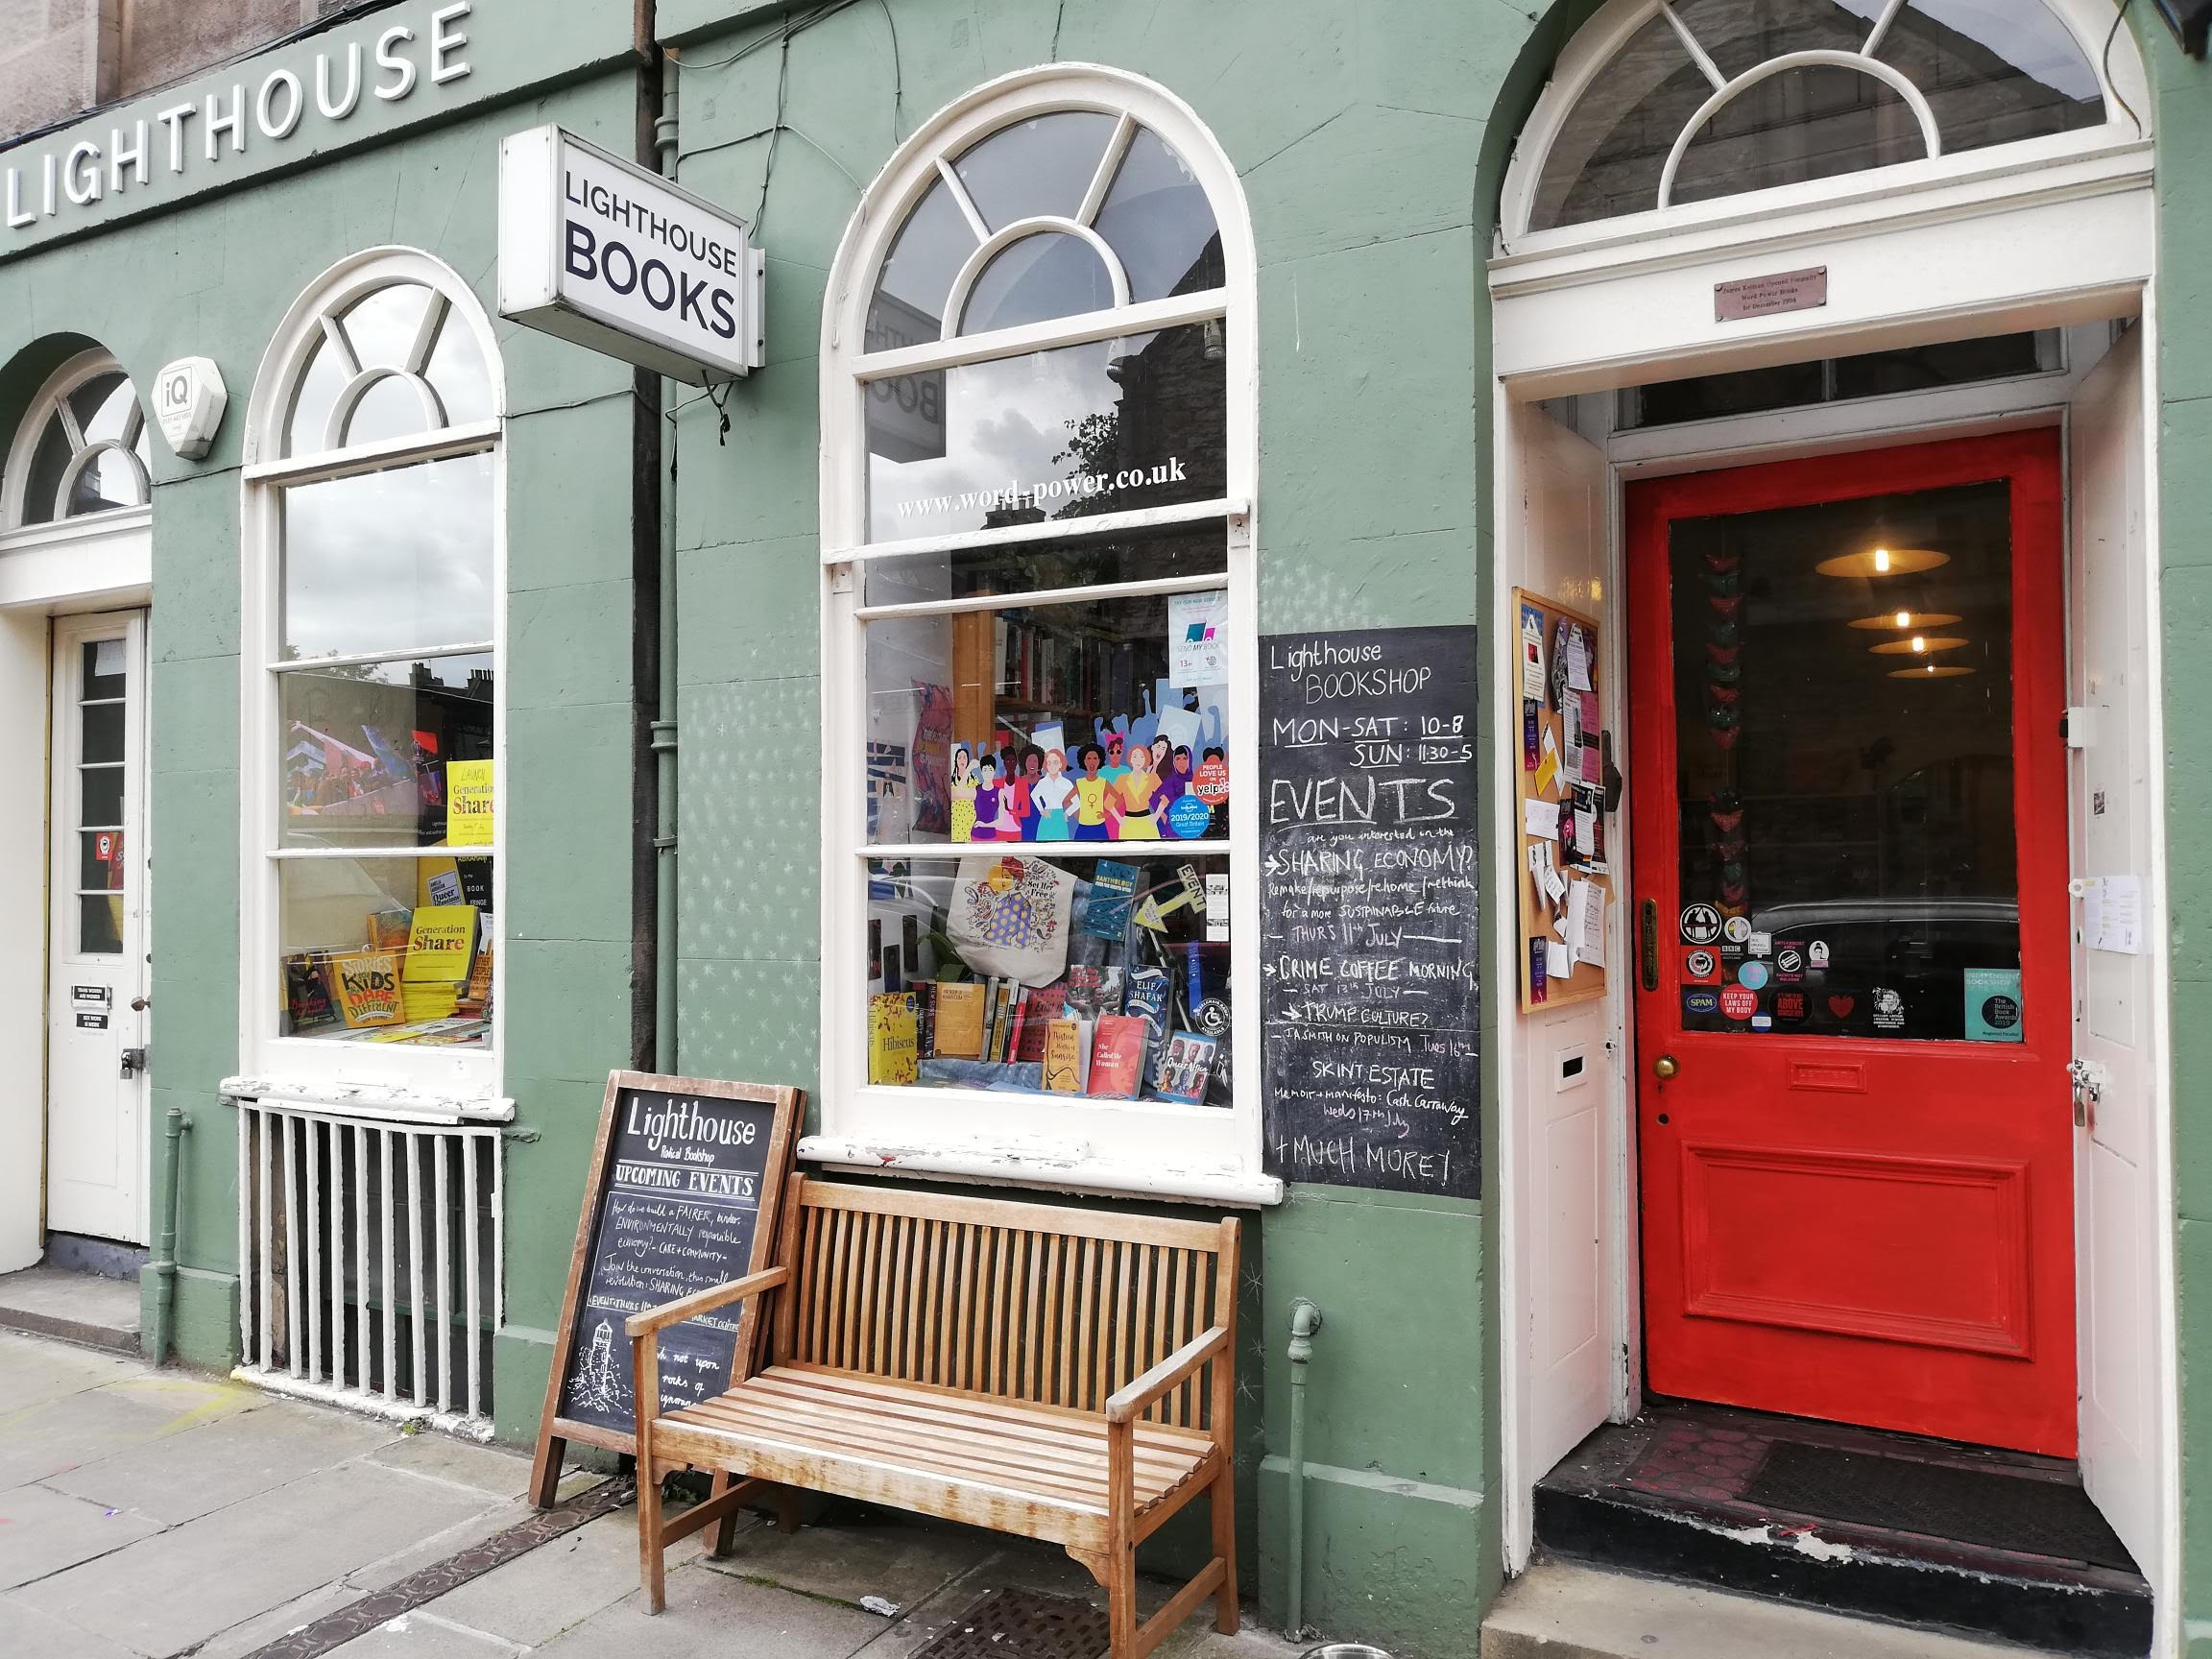 Lighthouse Bookshop - Lighthouse is Scotland's leading political bookshop. An activist, intersectional, feminist, lgbtq+ community space. Their events range from the annual Radical Book Fair (14-17th Nov 2019) to poetry launches, fiction book groups and feminist zine workshops. Look out for Storytelling nights they also host in August!Open 7 daysMon-Sat 9.30am-9.00pm/Sun 10.00am-8.00pm